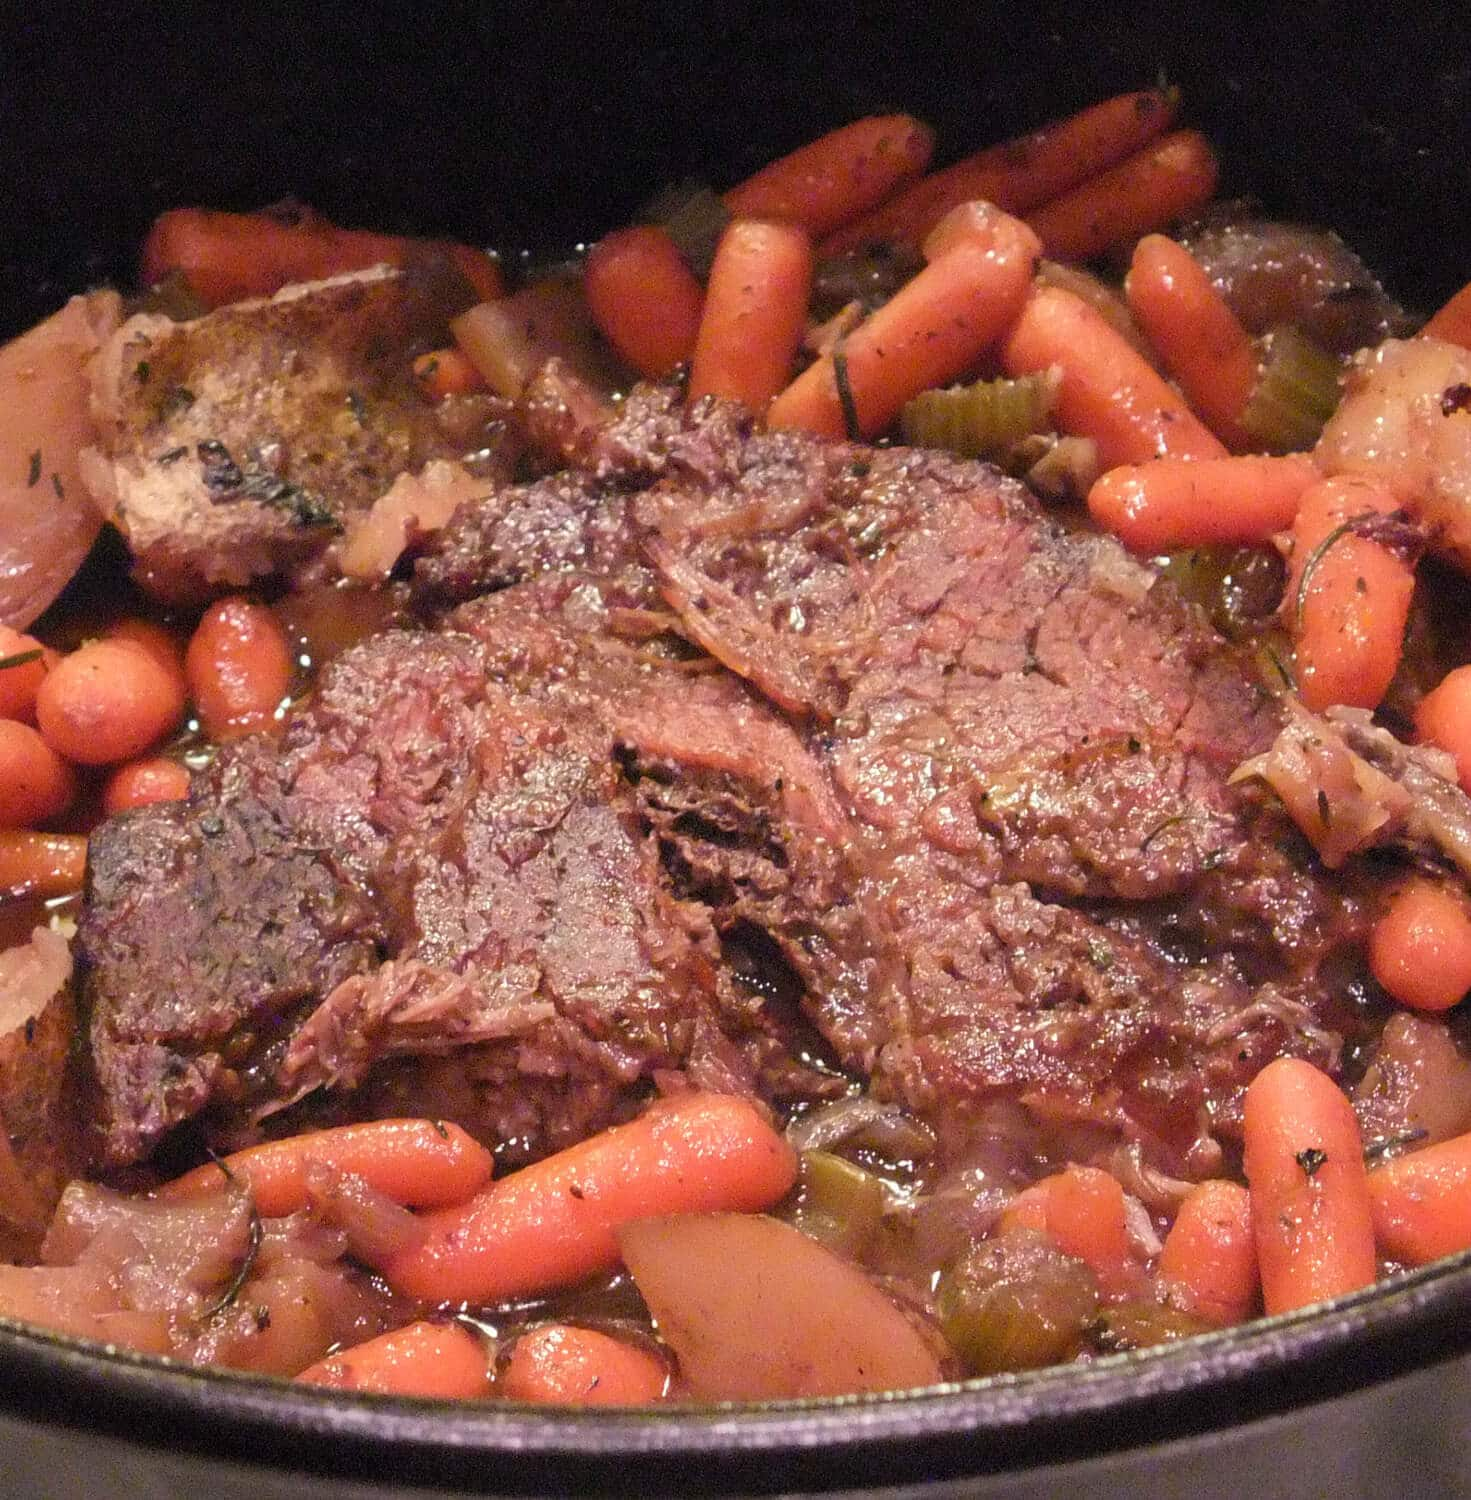 Cooked Pot Roast with vegetables in a classic sauce in a large Dutch oven.